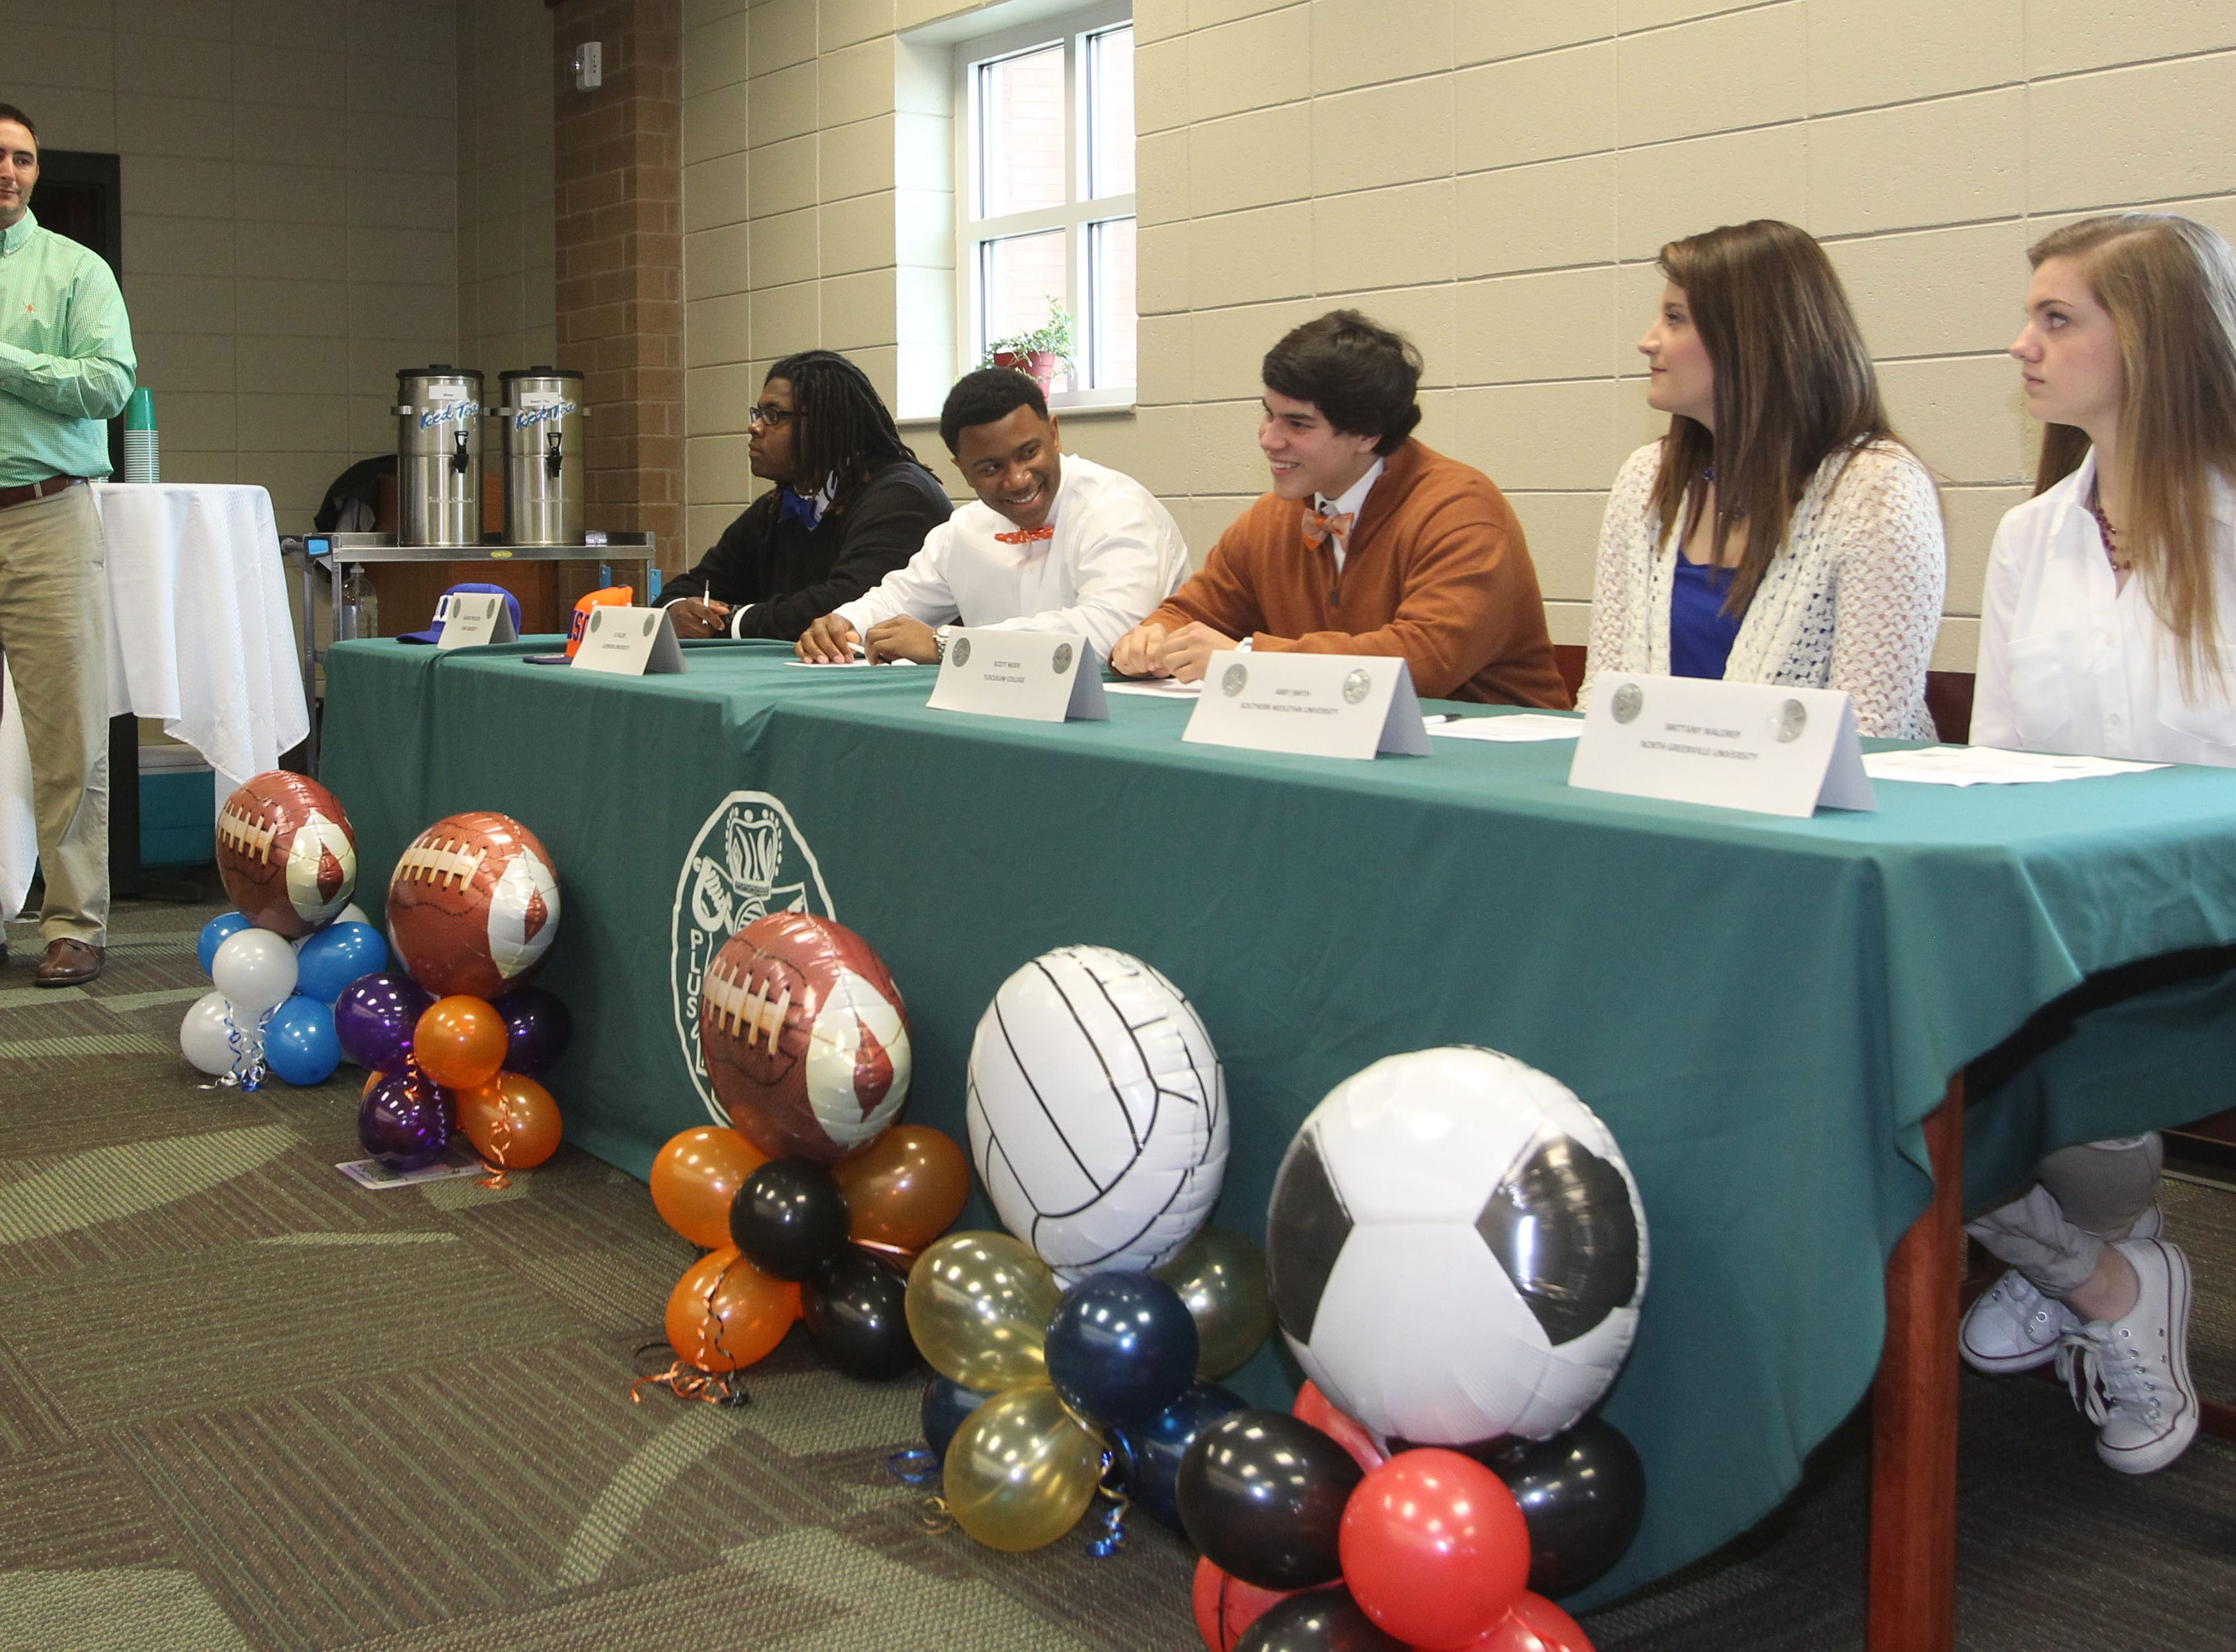 C.J. Fuller, second from left at the table, participates in National Signing Day at Easley High School during his senior year.